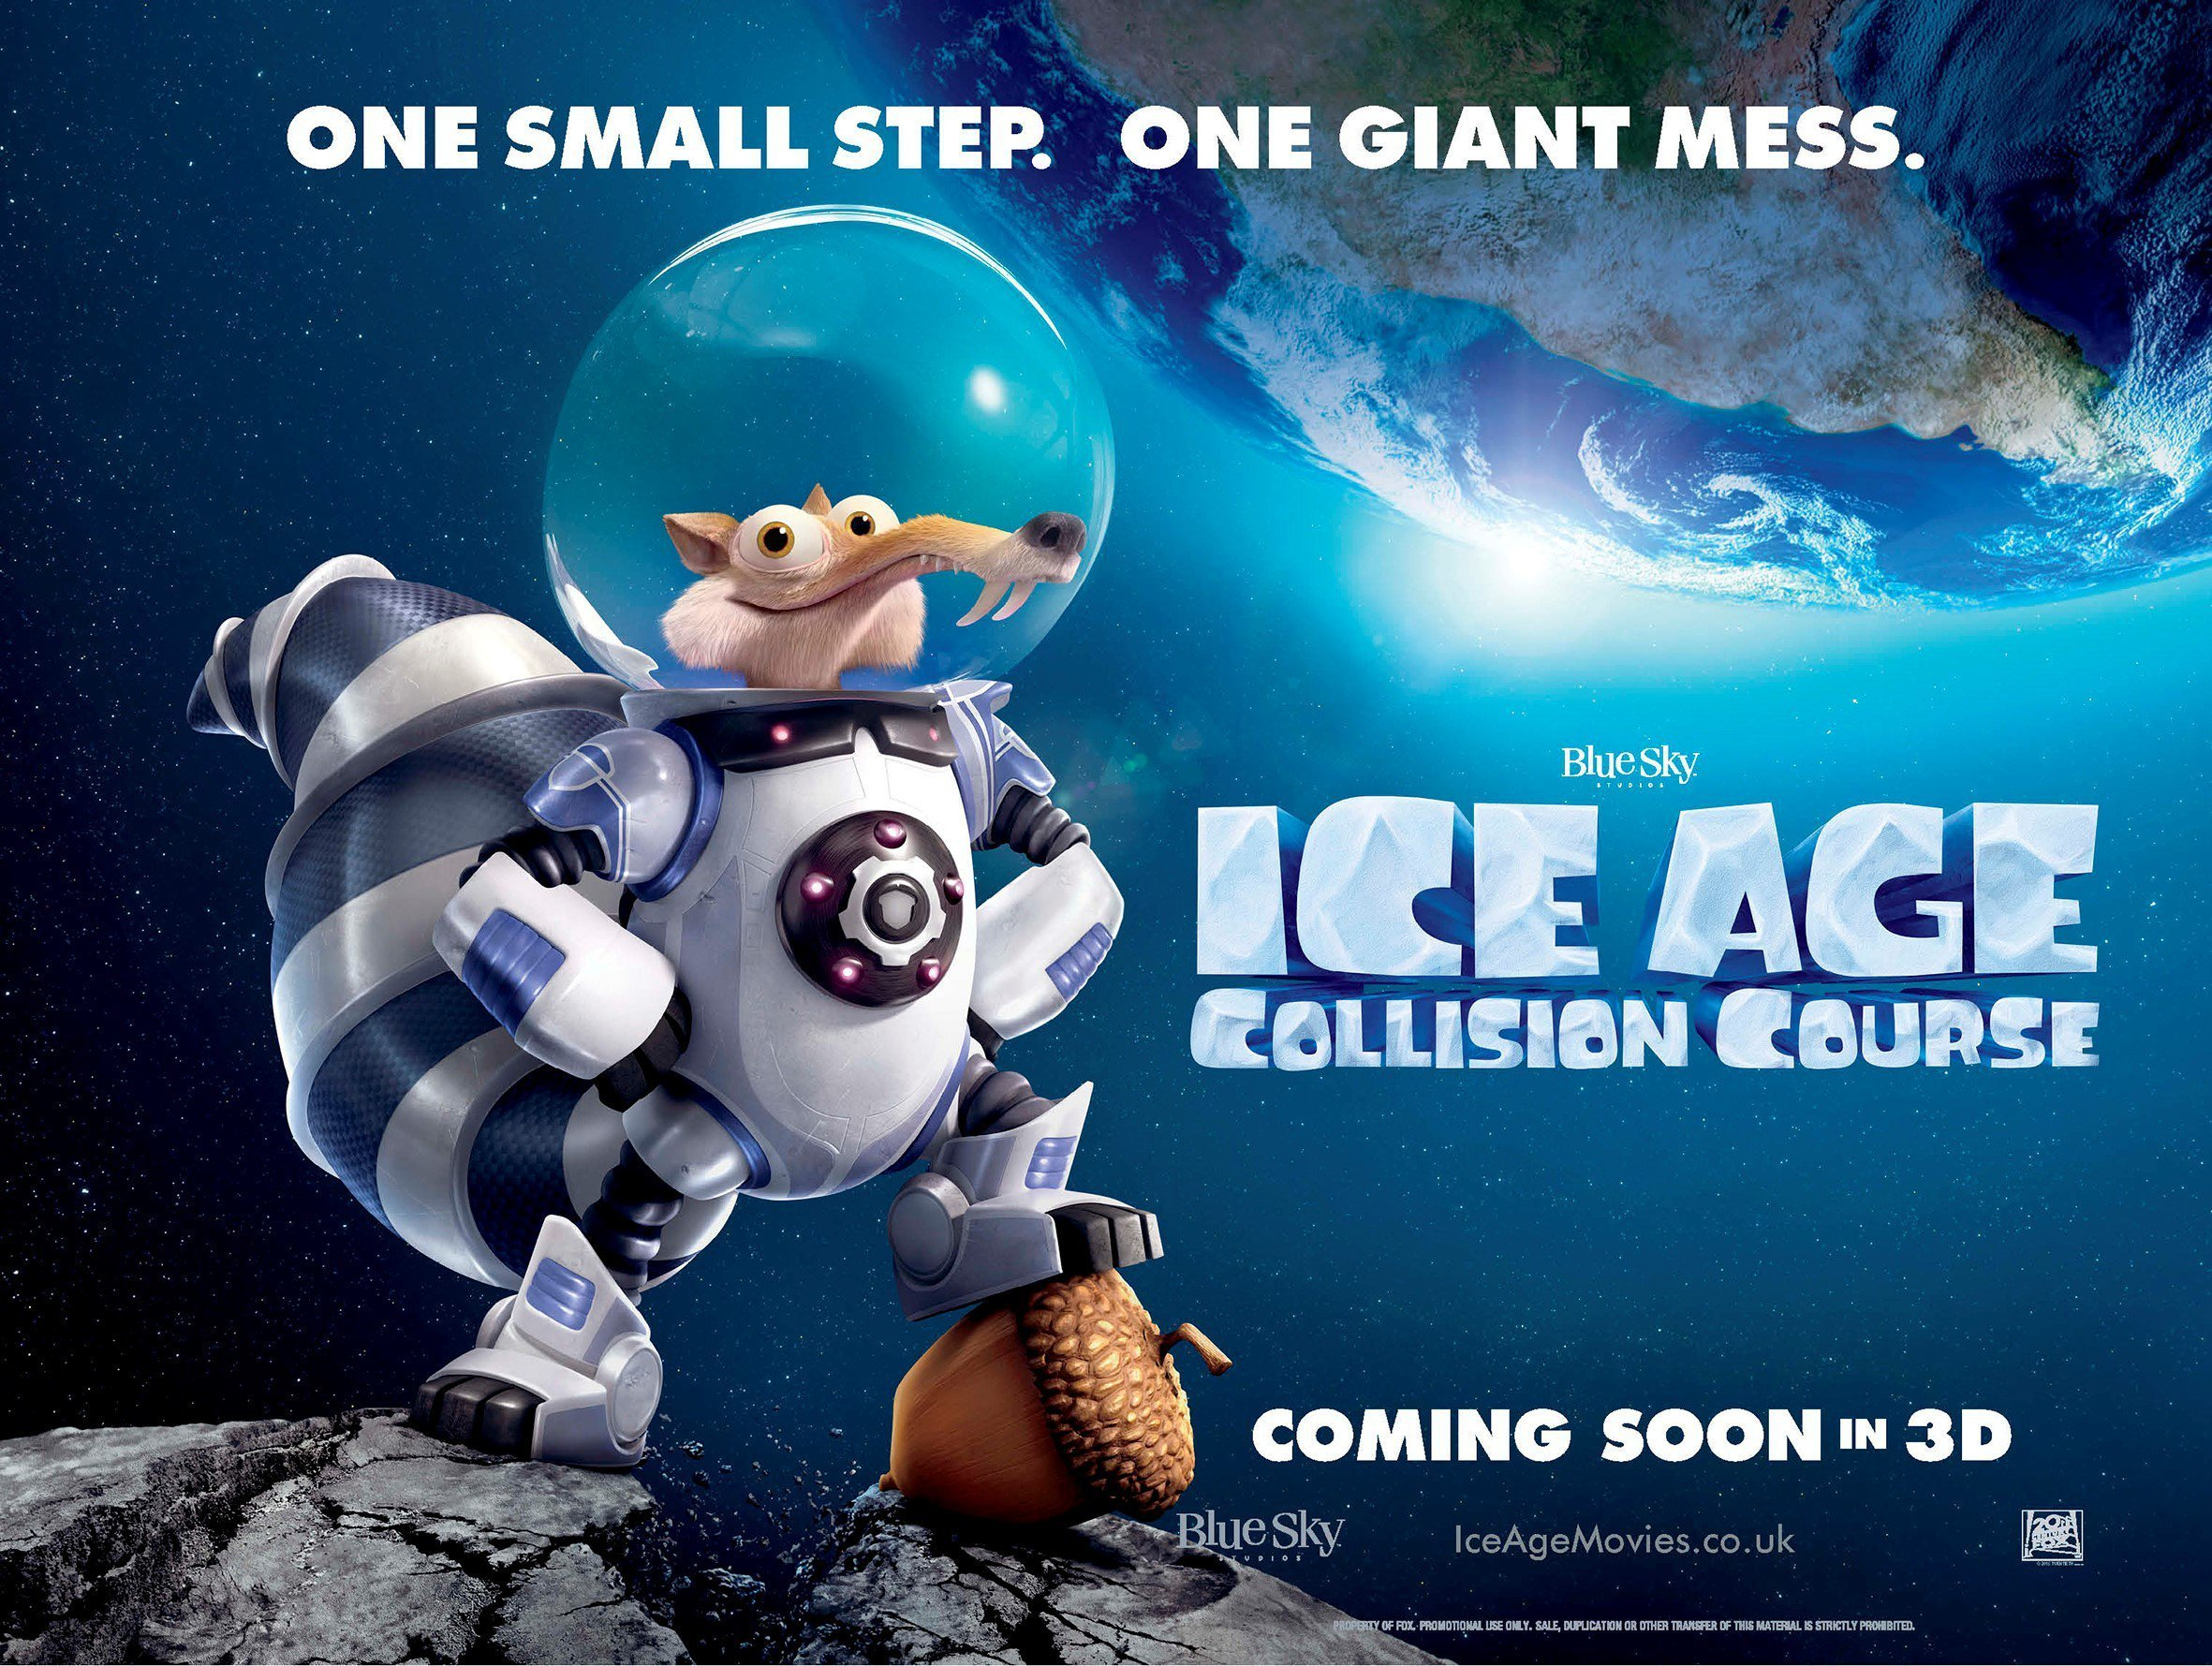 ice age 5 movies free download